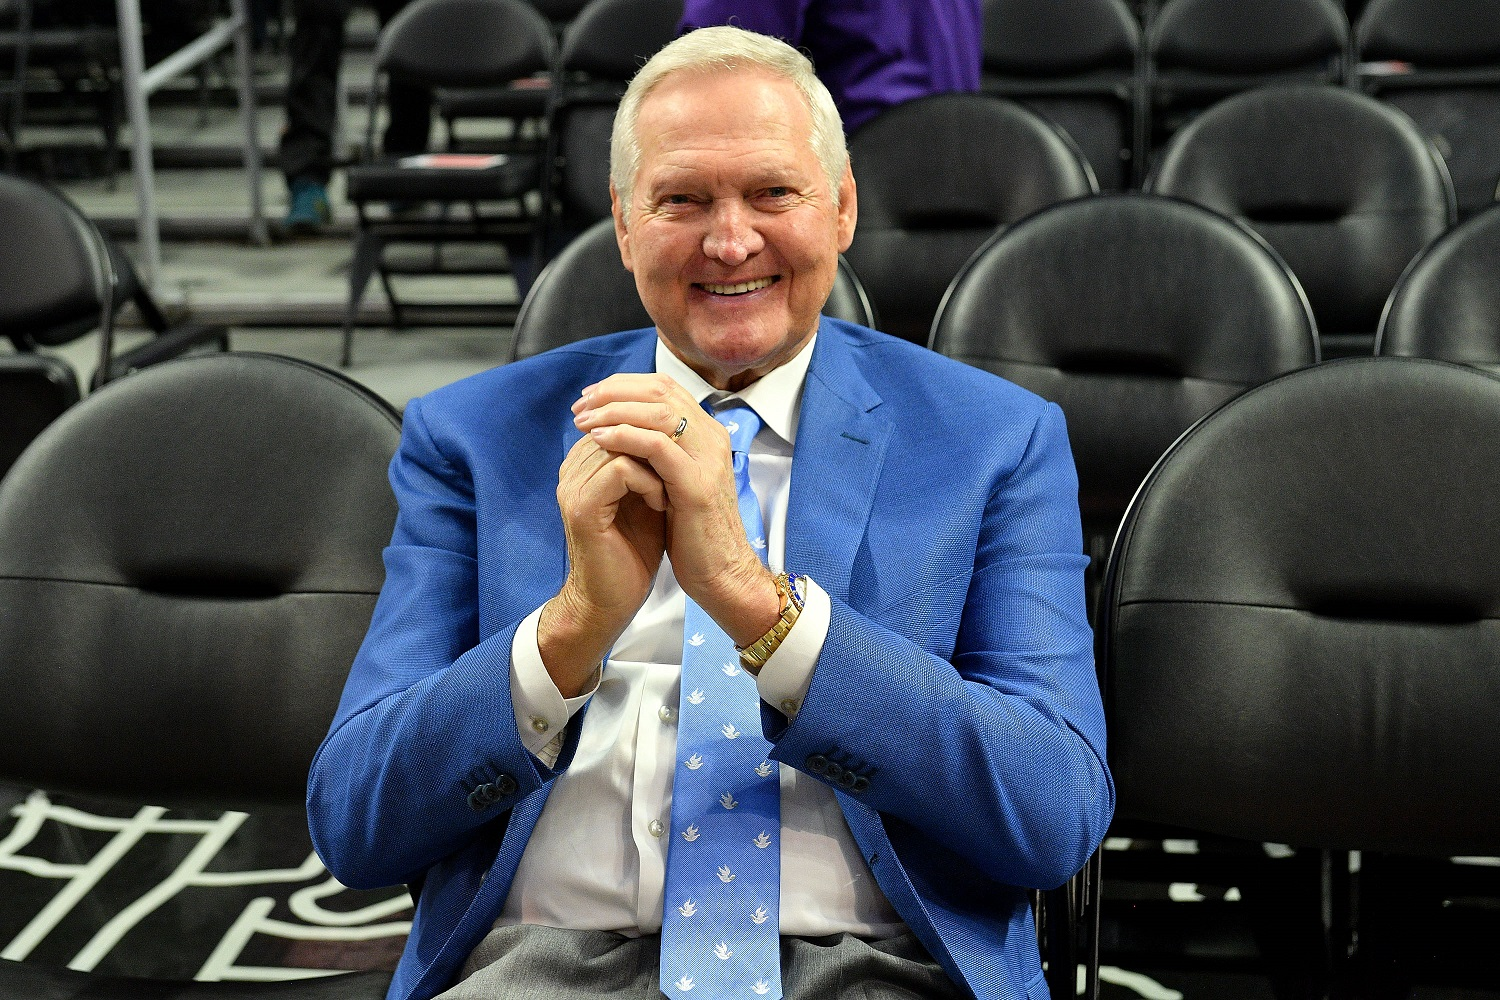 Jerry West Is 82 Years Old and Just Dunked on Lakers Owner Jeanie Buss